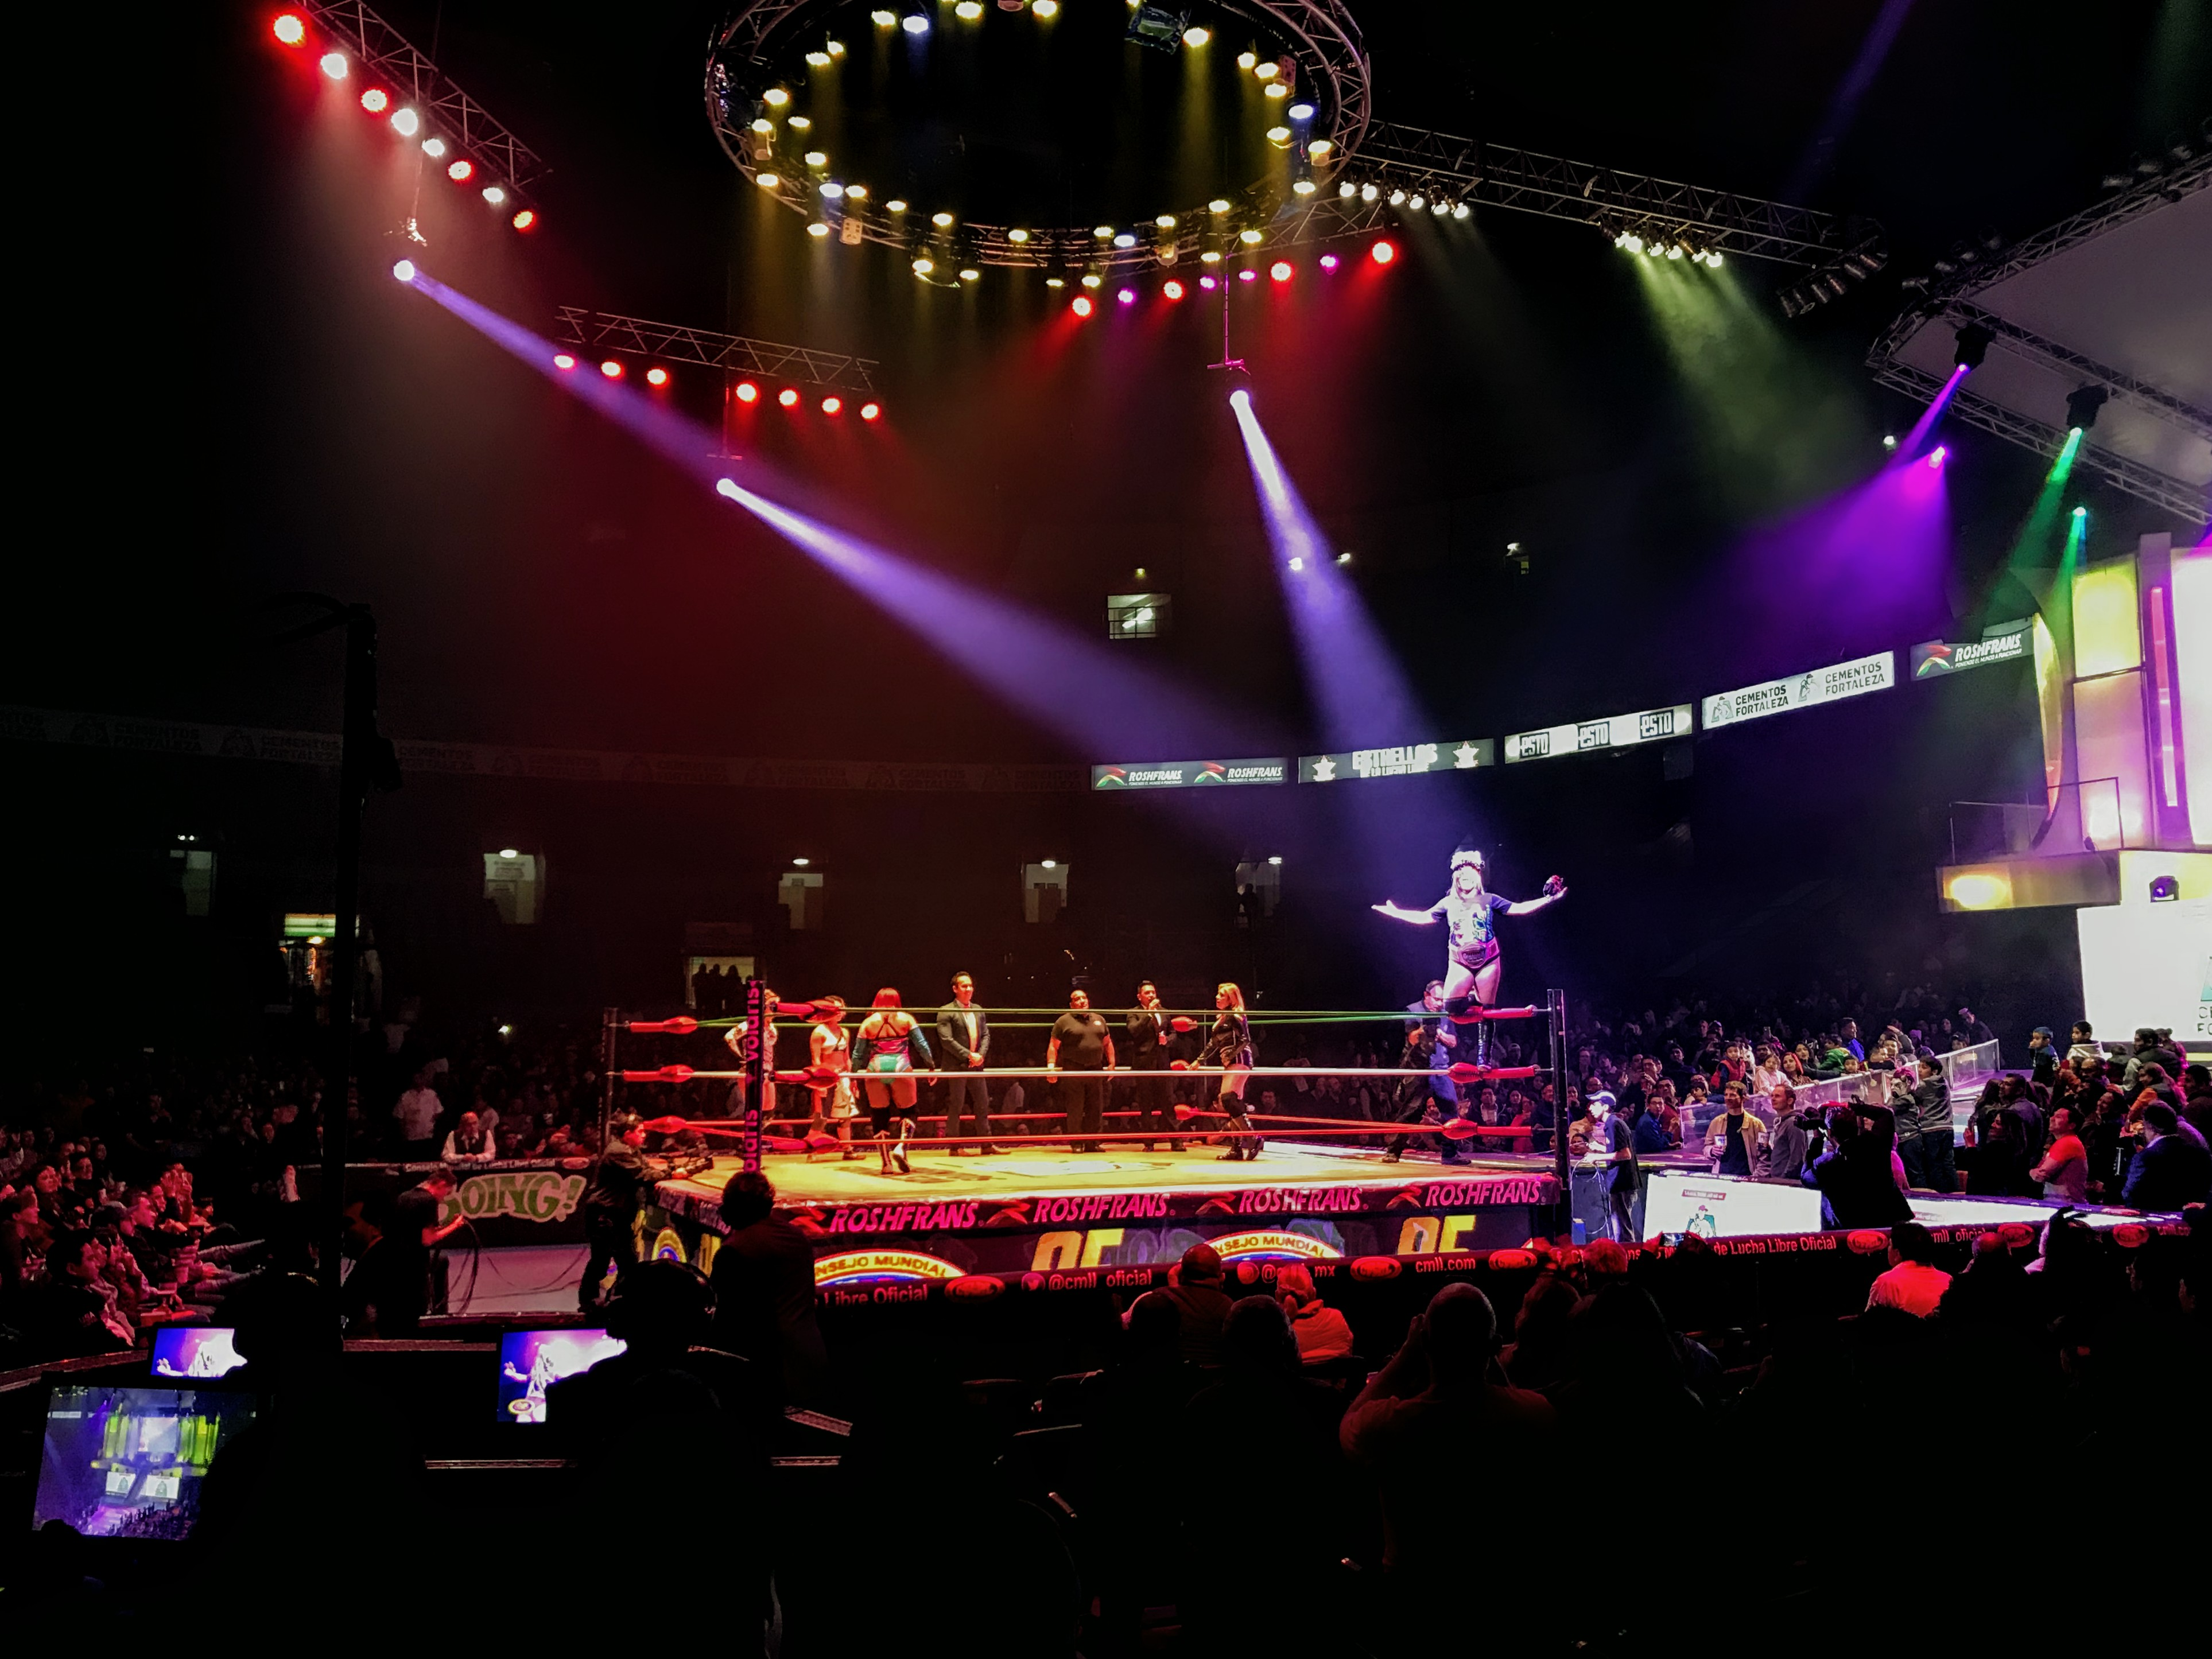 Lucha Libre wrestlers in the ring in Mexico City